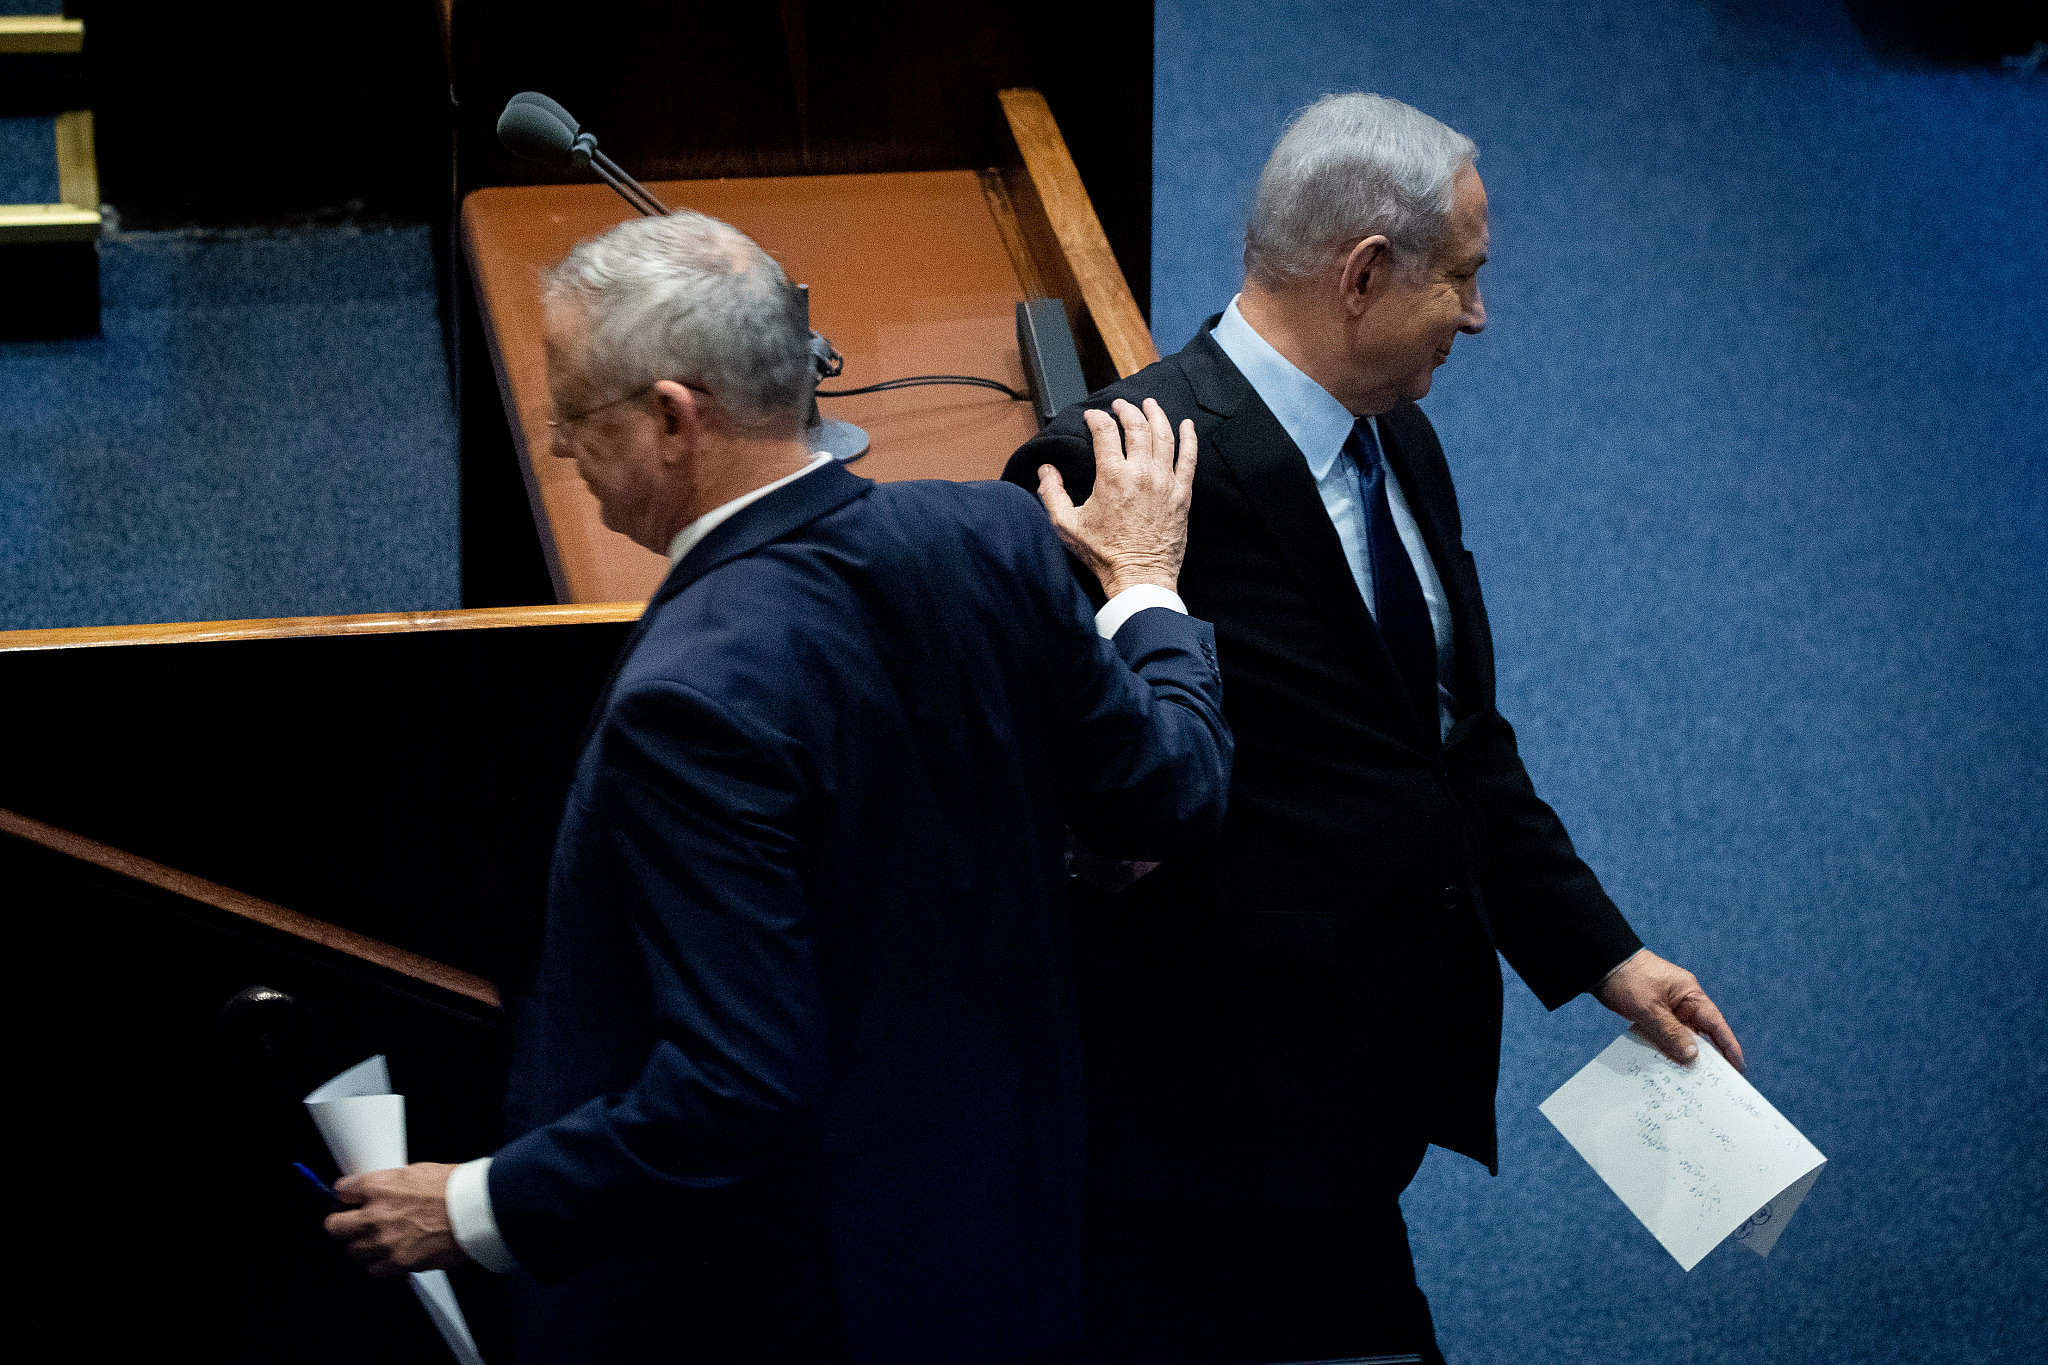 Israeli Prime Minister Benjamin Netanyahu and Blue and White party leader Benny Gantz at a memorial ceremony at the Knesset marking 24 years since the assassination of former Israeli Prime Minister Yitzhak Rabin, November 10, 2019. (Yonatan Sindel/Flash90)